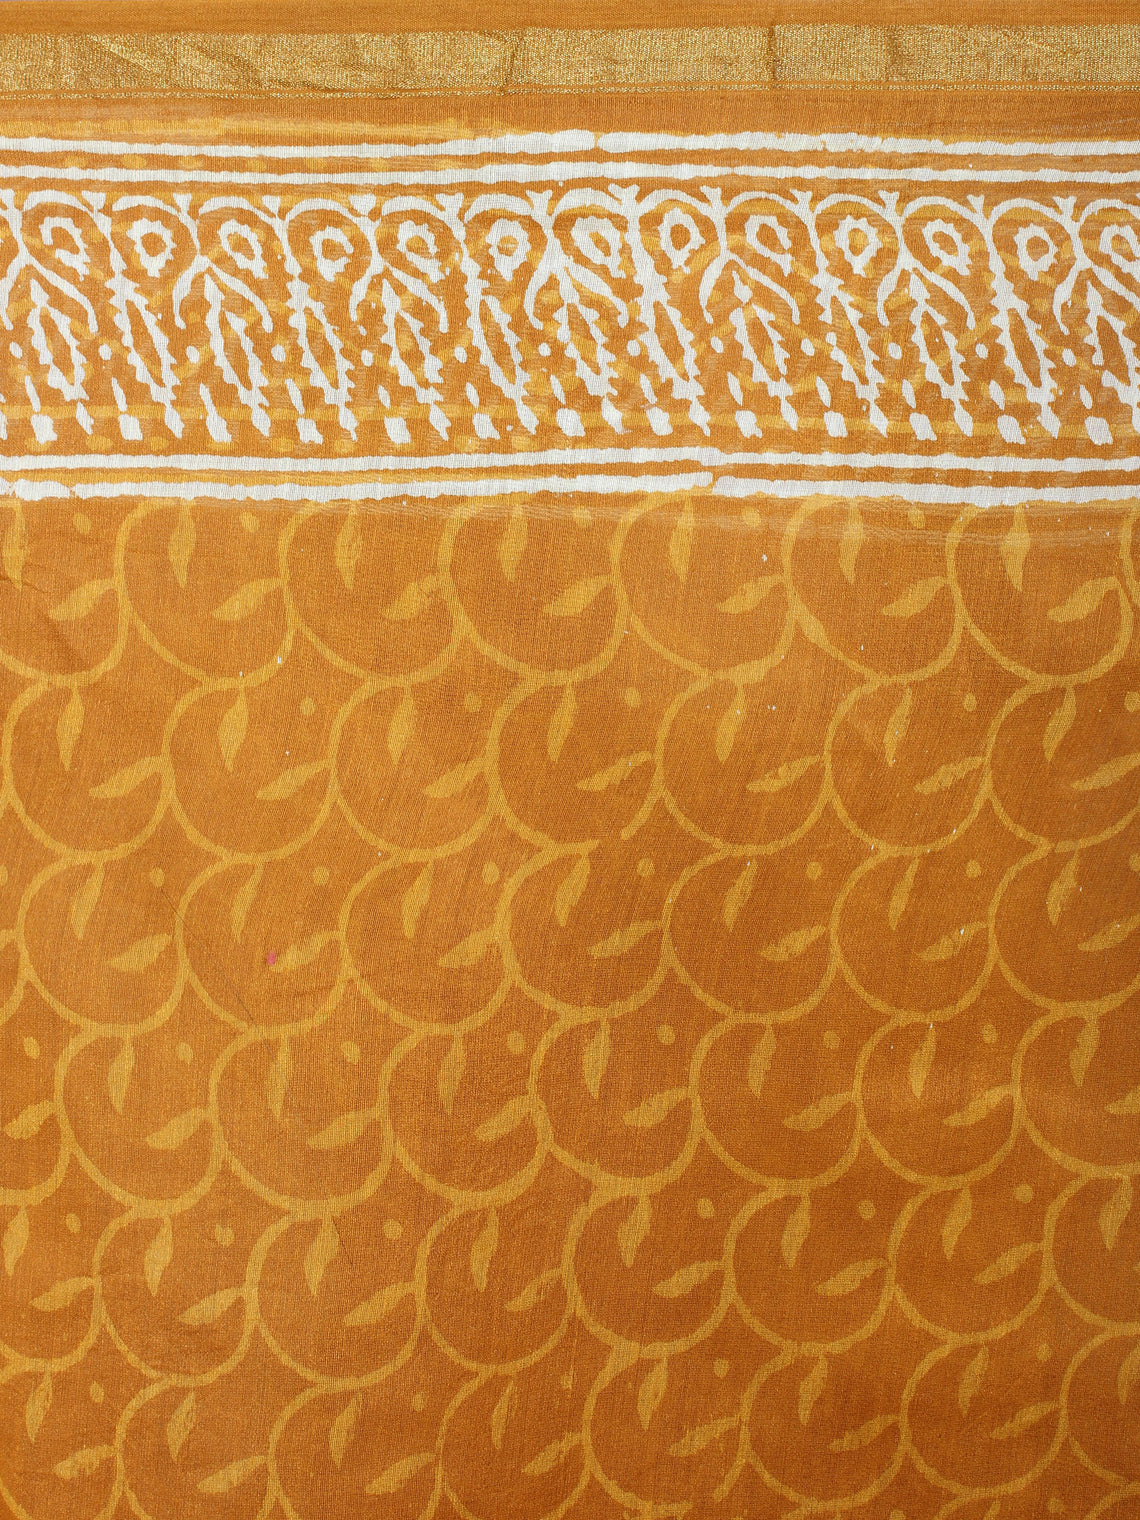 Yellow Beige Hand Block Bagru Printed in Natural Vegetable Colors Chanderi Saree - S03170534